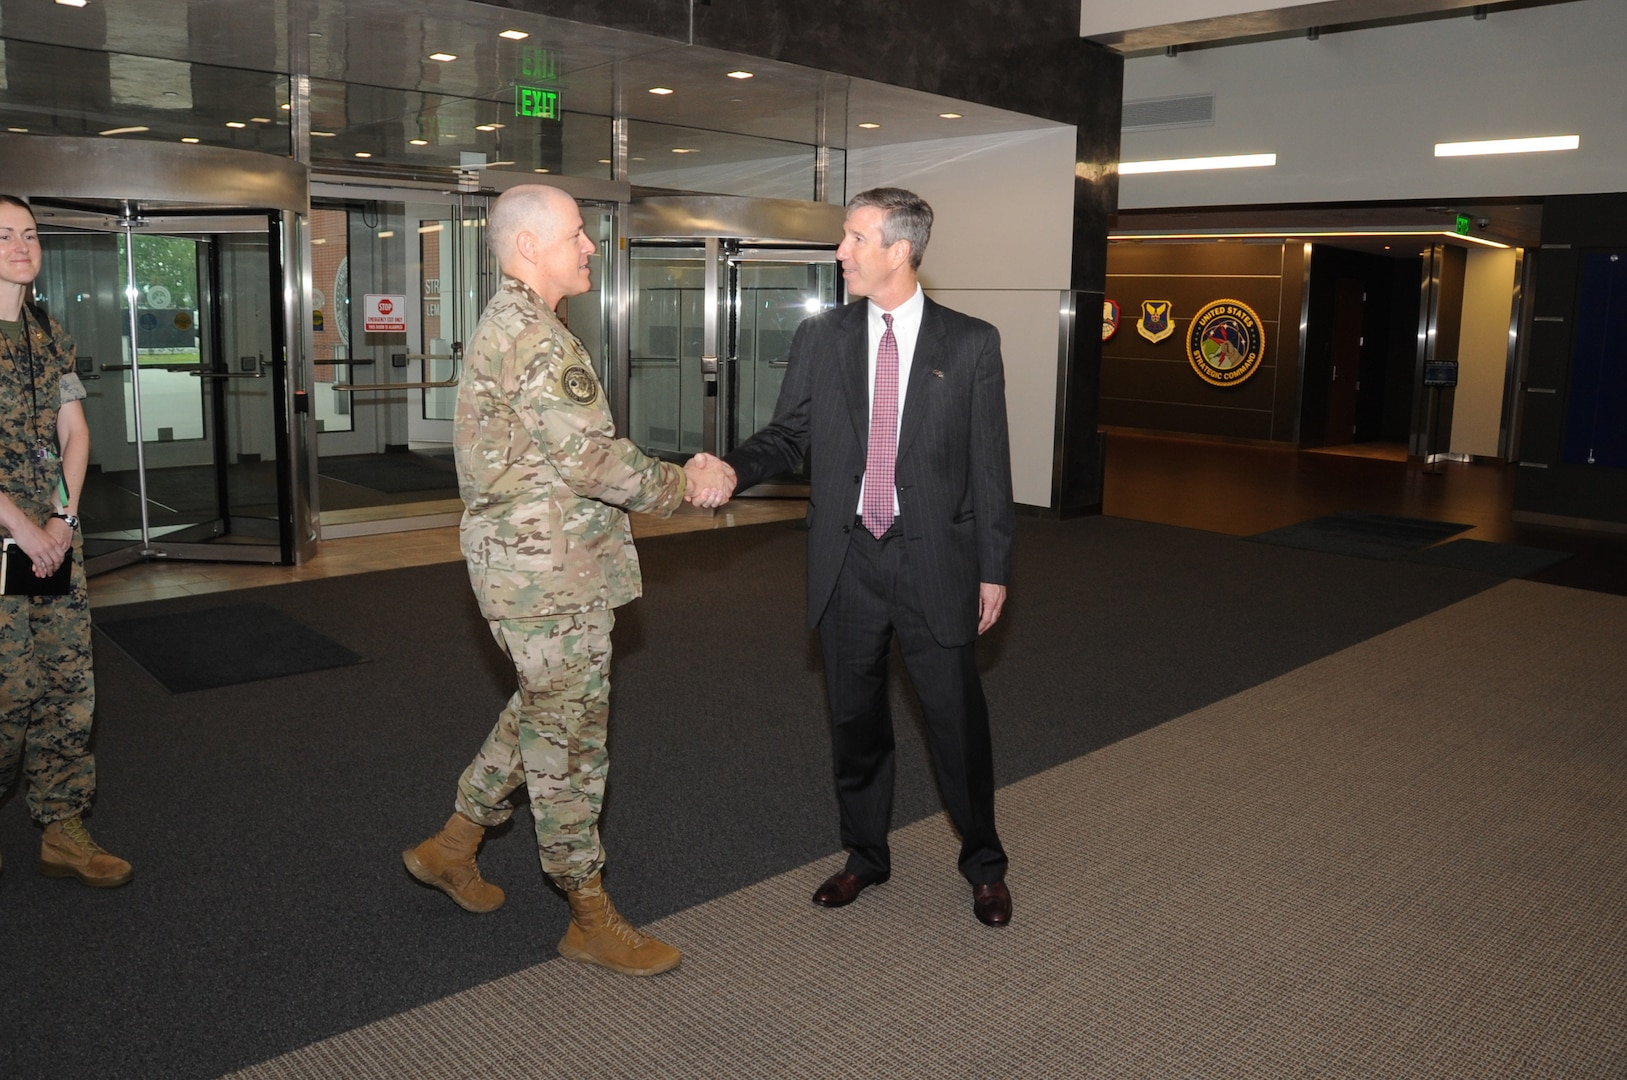 Dr Rhys Williamd Action Director, Defense Threat Reduction Agency, is greeted by LTG Bussier Deputy Commander, USSTRATCOM